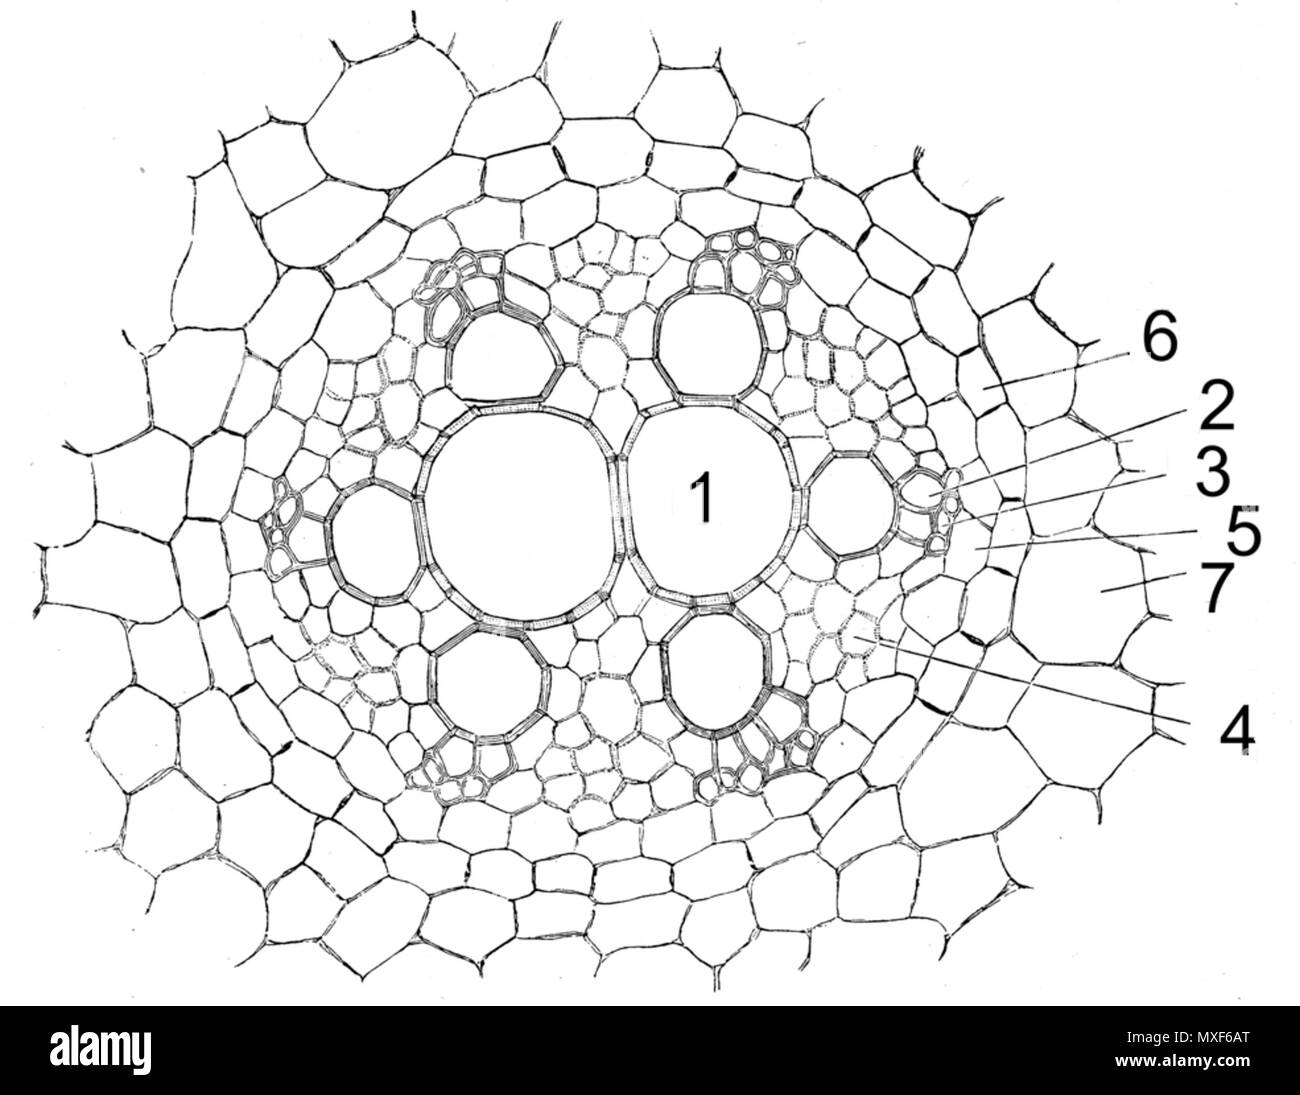 Vascular Bundle Cut Out Stock Images & Pictures - Alamy